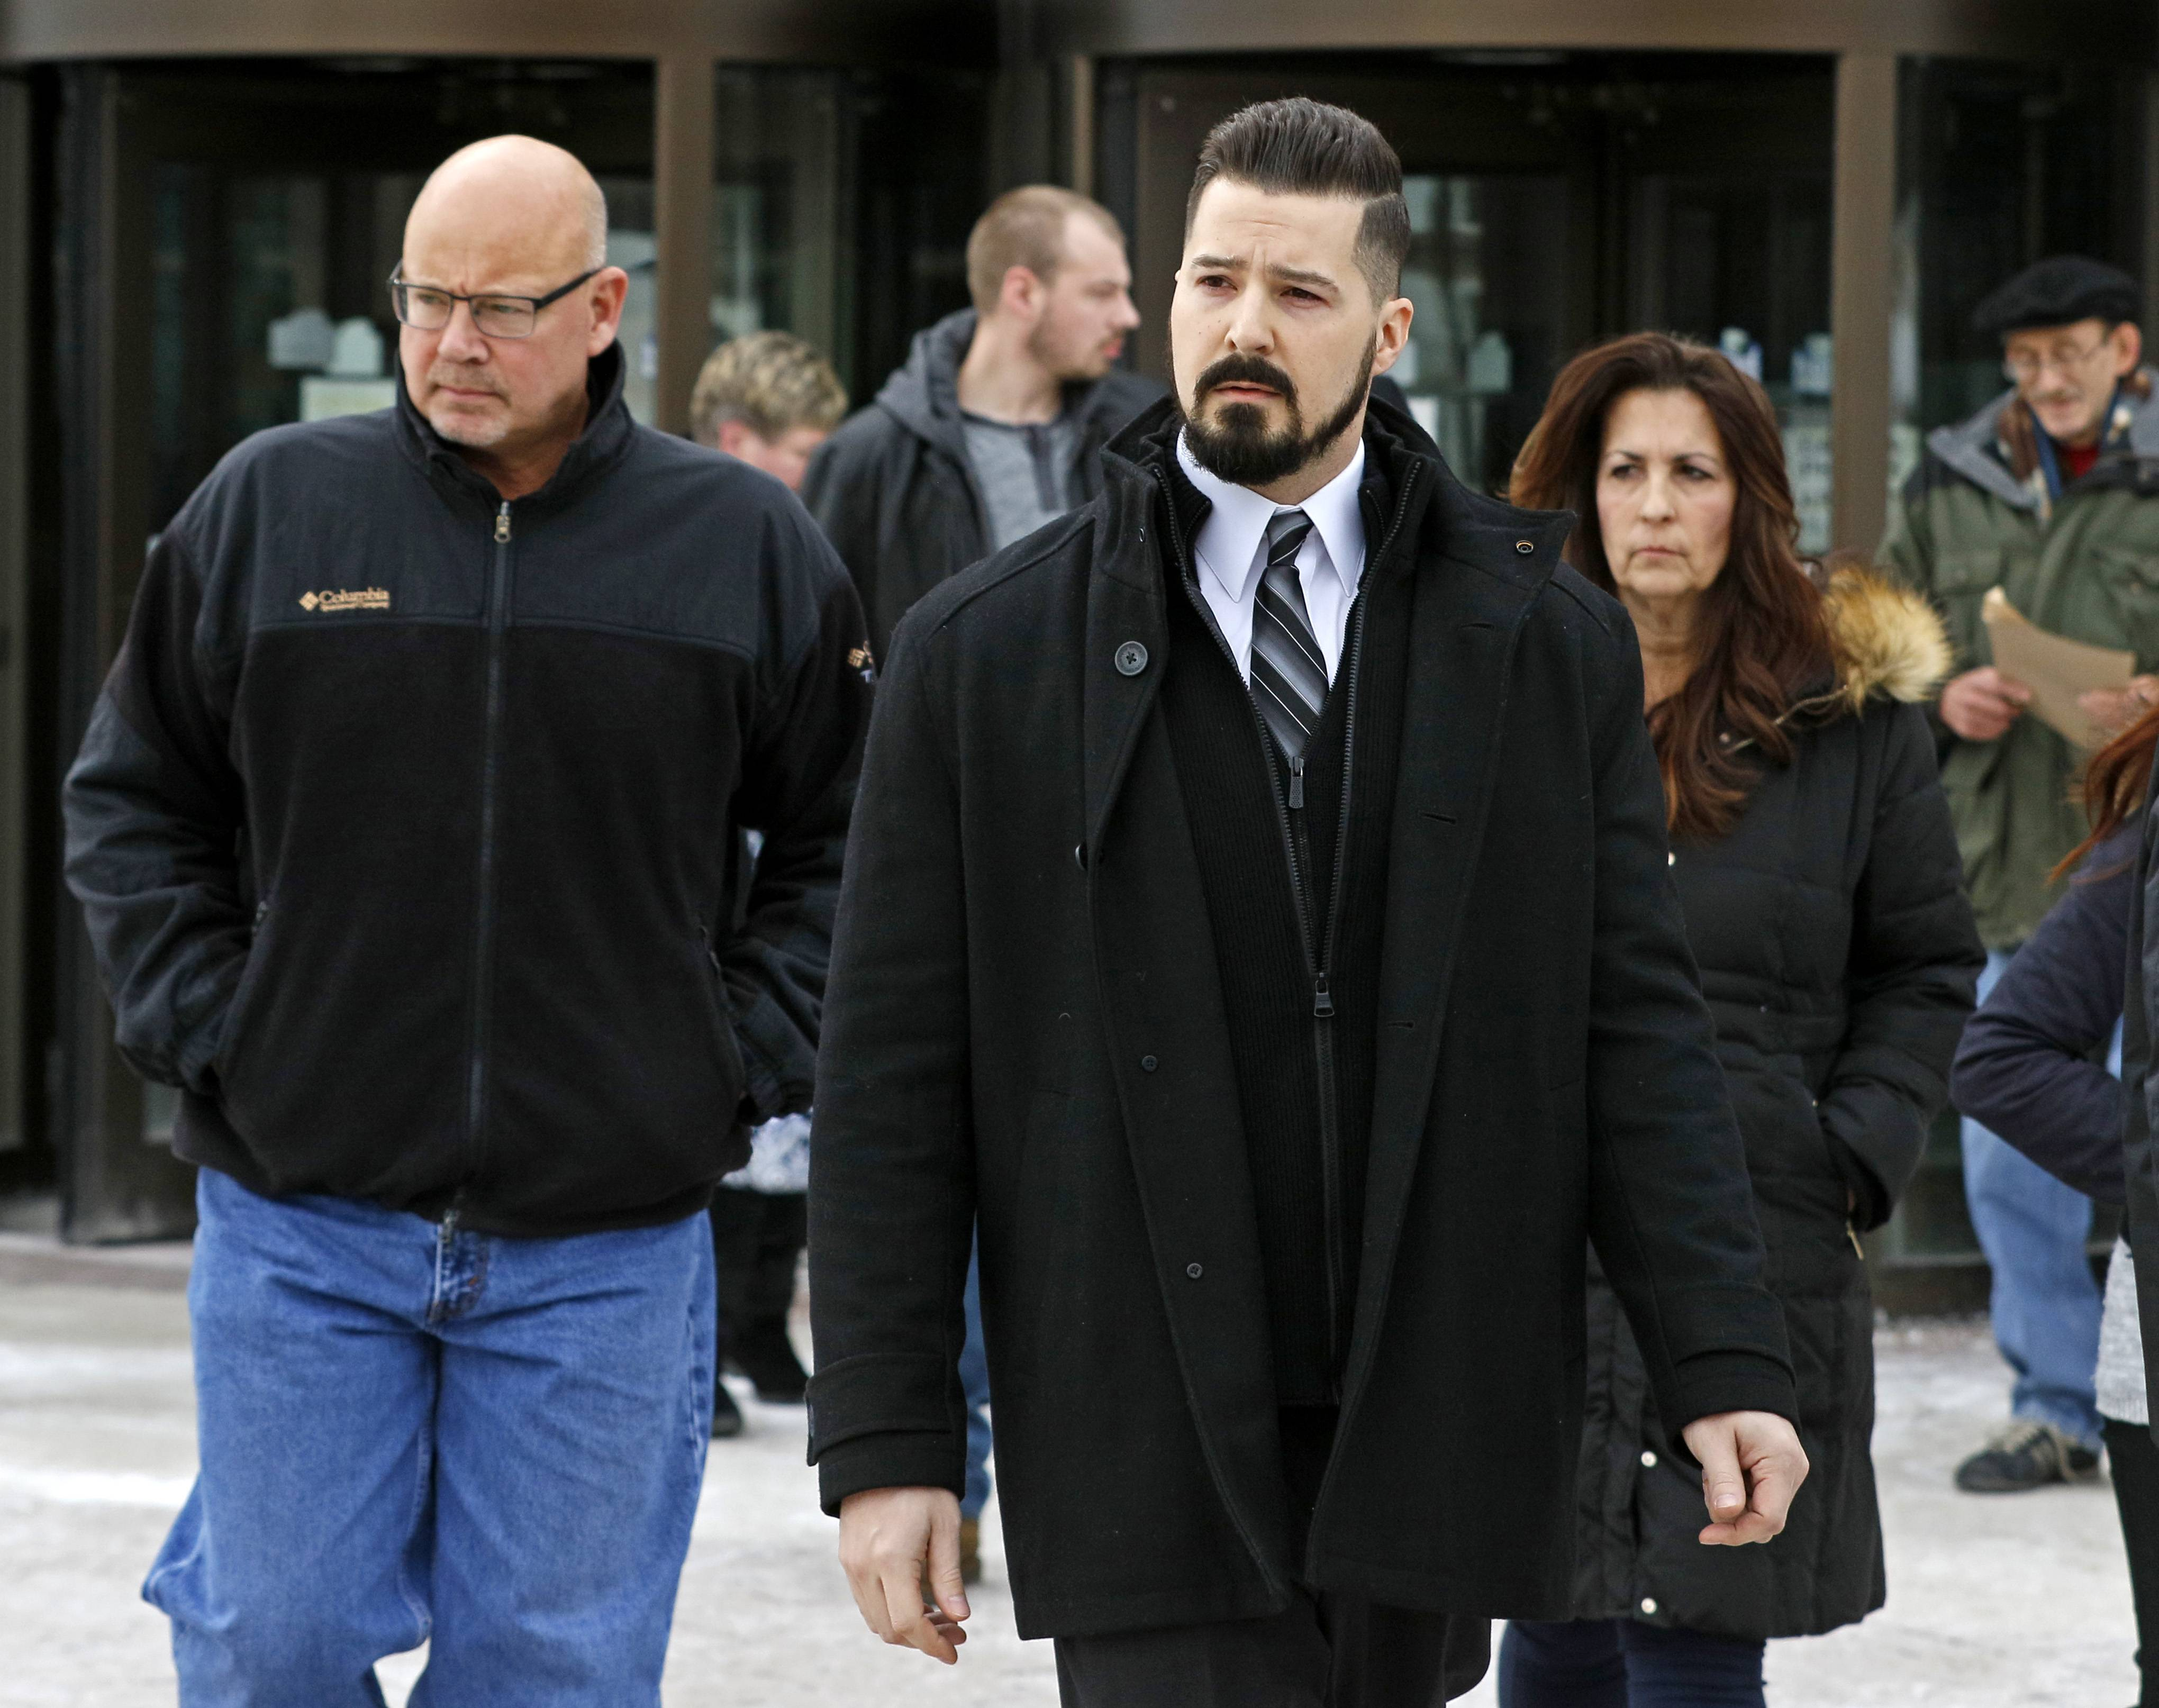 Former Schaumburg police officer John Cichy, center, who has been serving as a youth minister at a church while awaiting trial in connection with a drug-running operation, likely will issue an approved video statement Wednesday after DuPage County prosecutors dropped all charges against him on Tuesday.